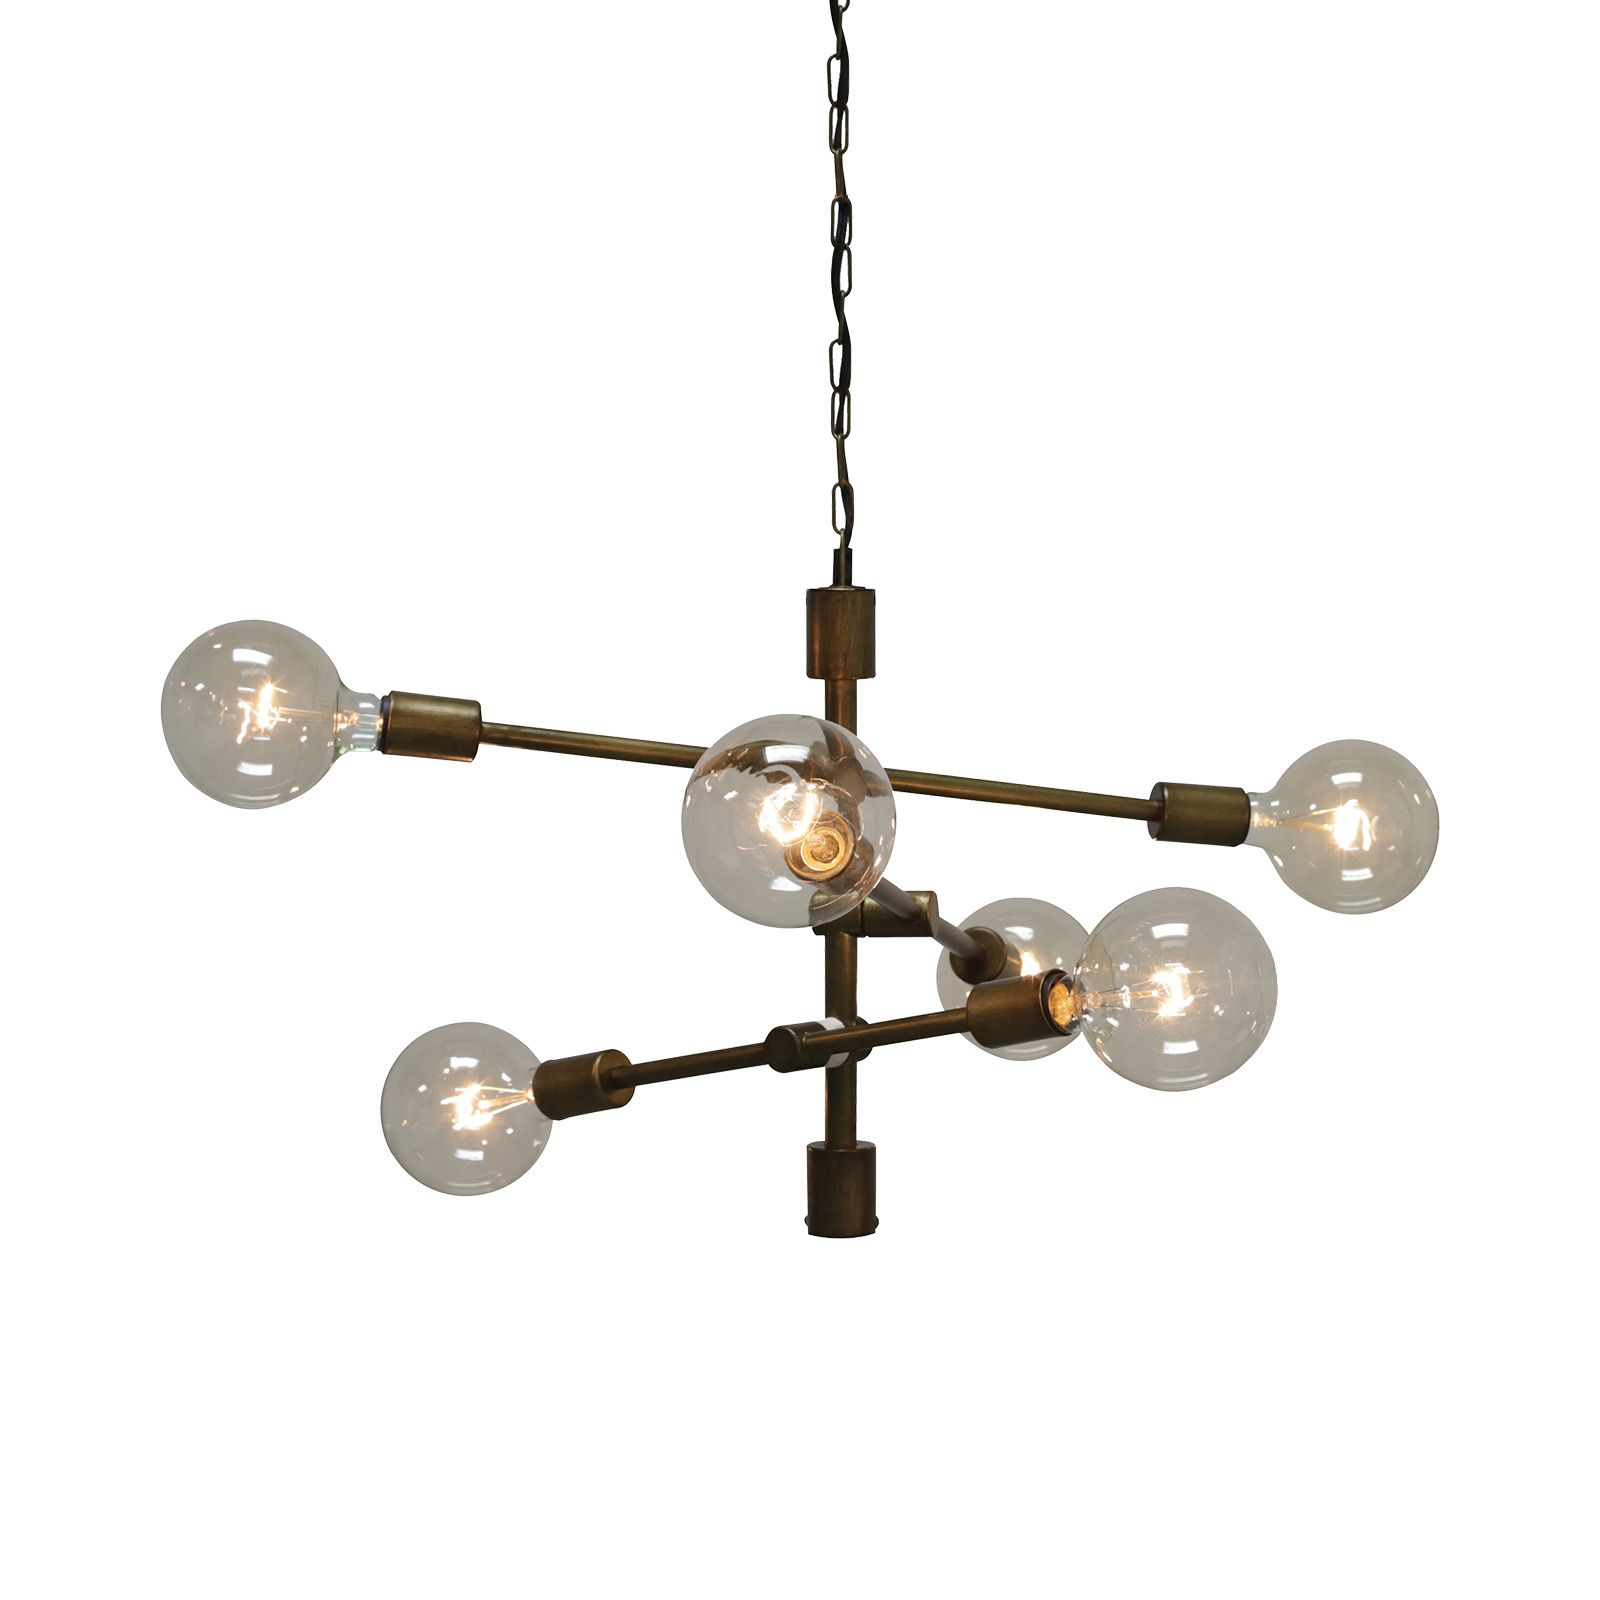 Accessorize a chic modern workspace or entryway with this handsome boasting a minimal metal crafted design this drue hanging chandelier will make a stylish addition to industrial chi arubaitofo Image collections